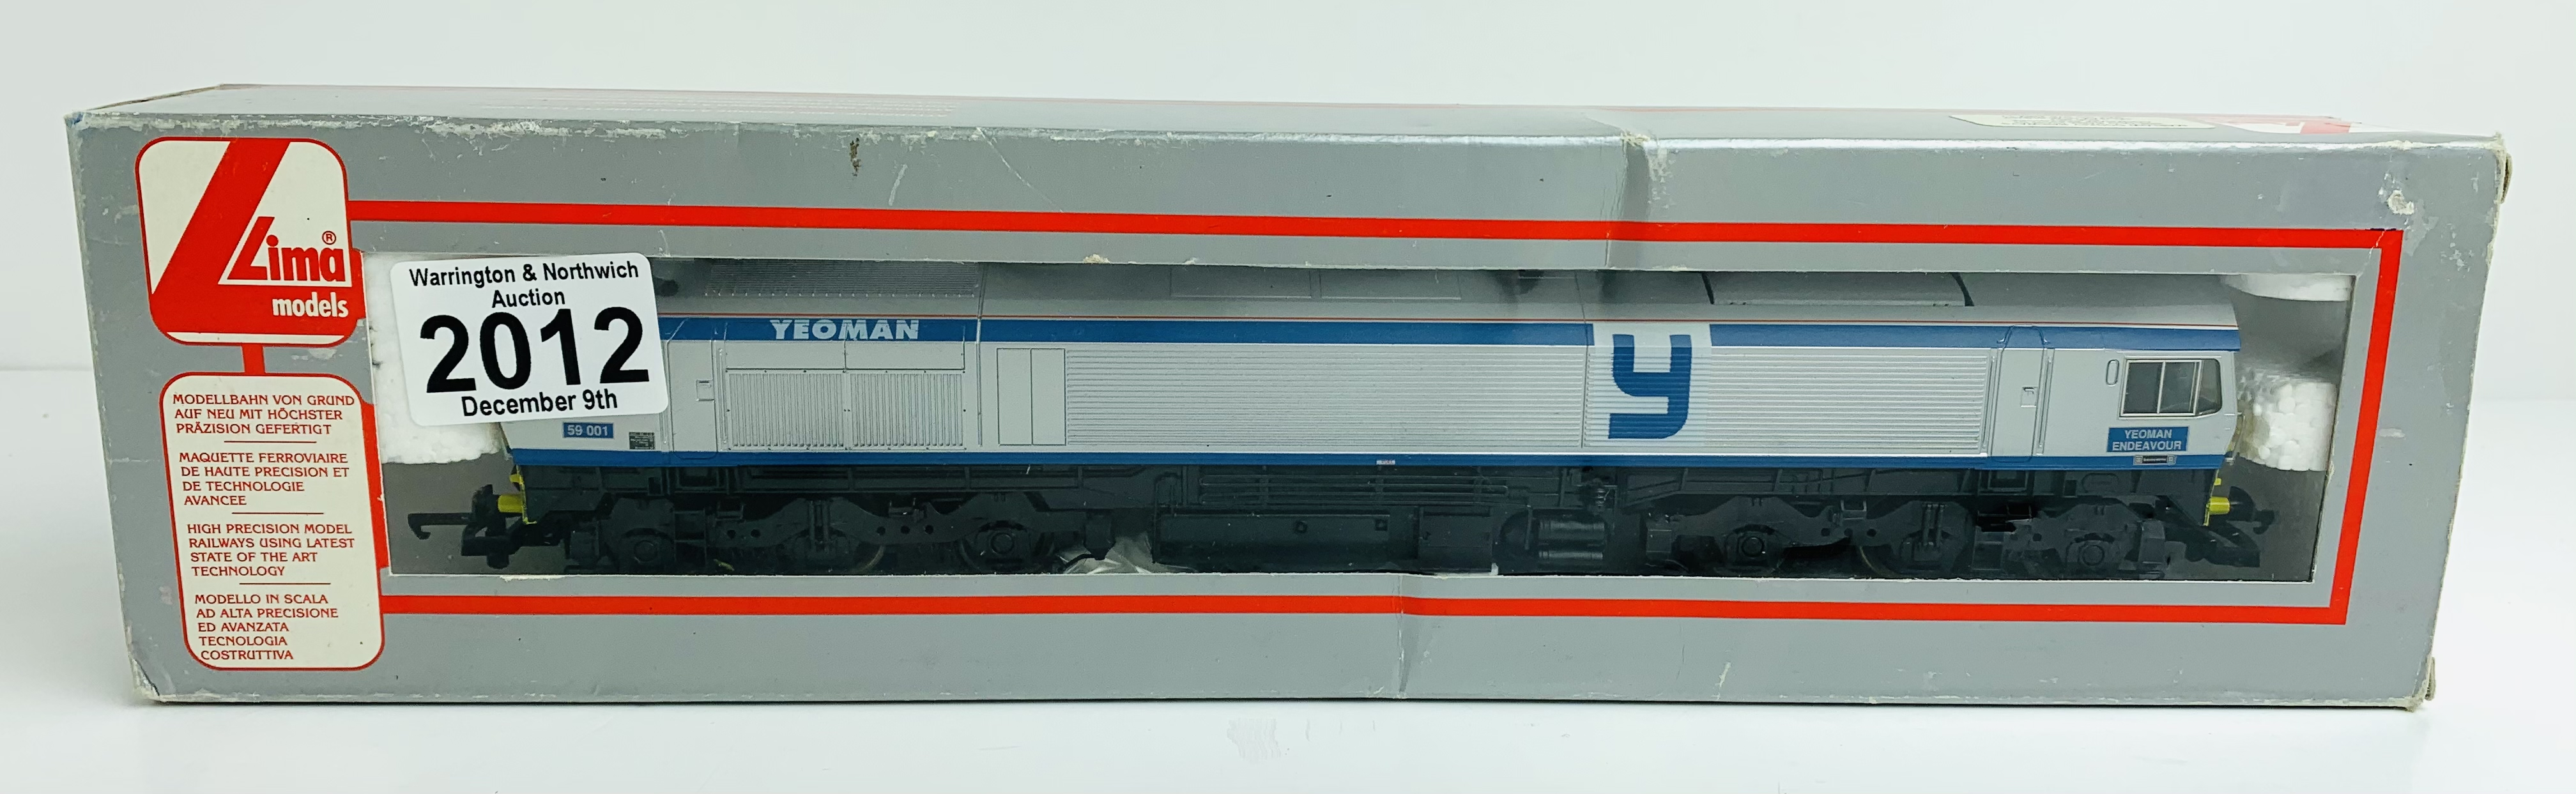 Lima Class 59 001 'Yeoman' Livery Yeoman Endeavour Loco - Boxed P&P Group 1 (£14+VAT for the first